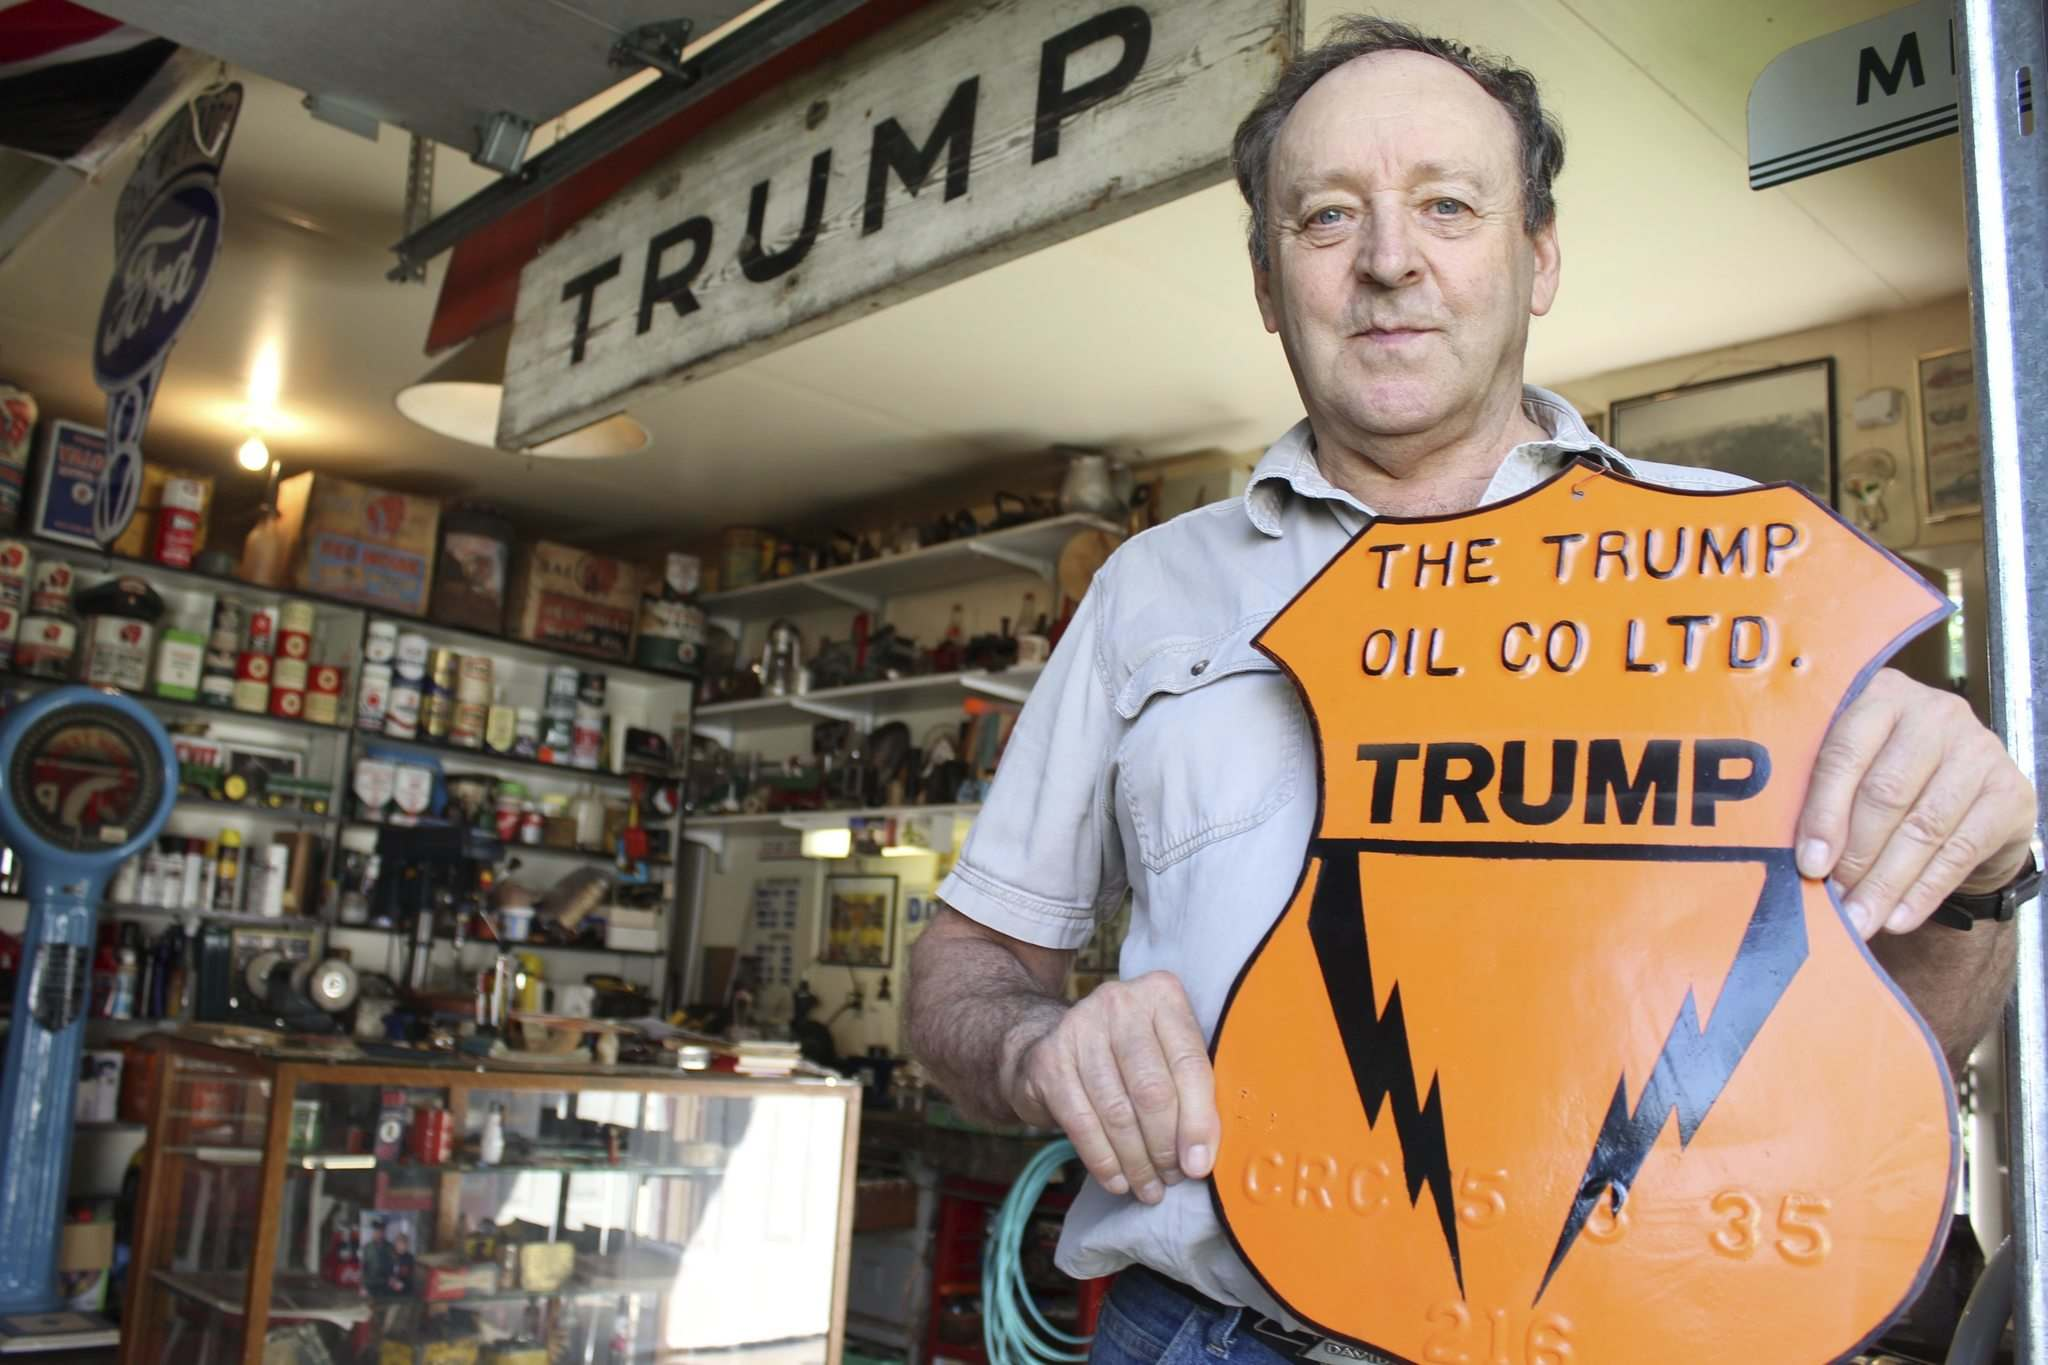 Photos by BILL REDEKOP / WINNIPEG FREE PRESS</p><p>Harvey Thiessen, who collects petroliana (gas station memorabilia), poses with a Trump Oil sign. At right is a Red Indian oil display.</p>